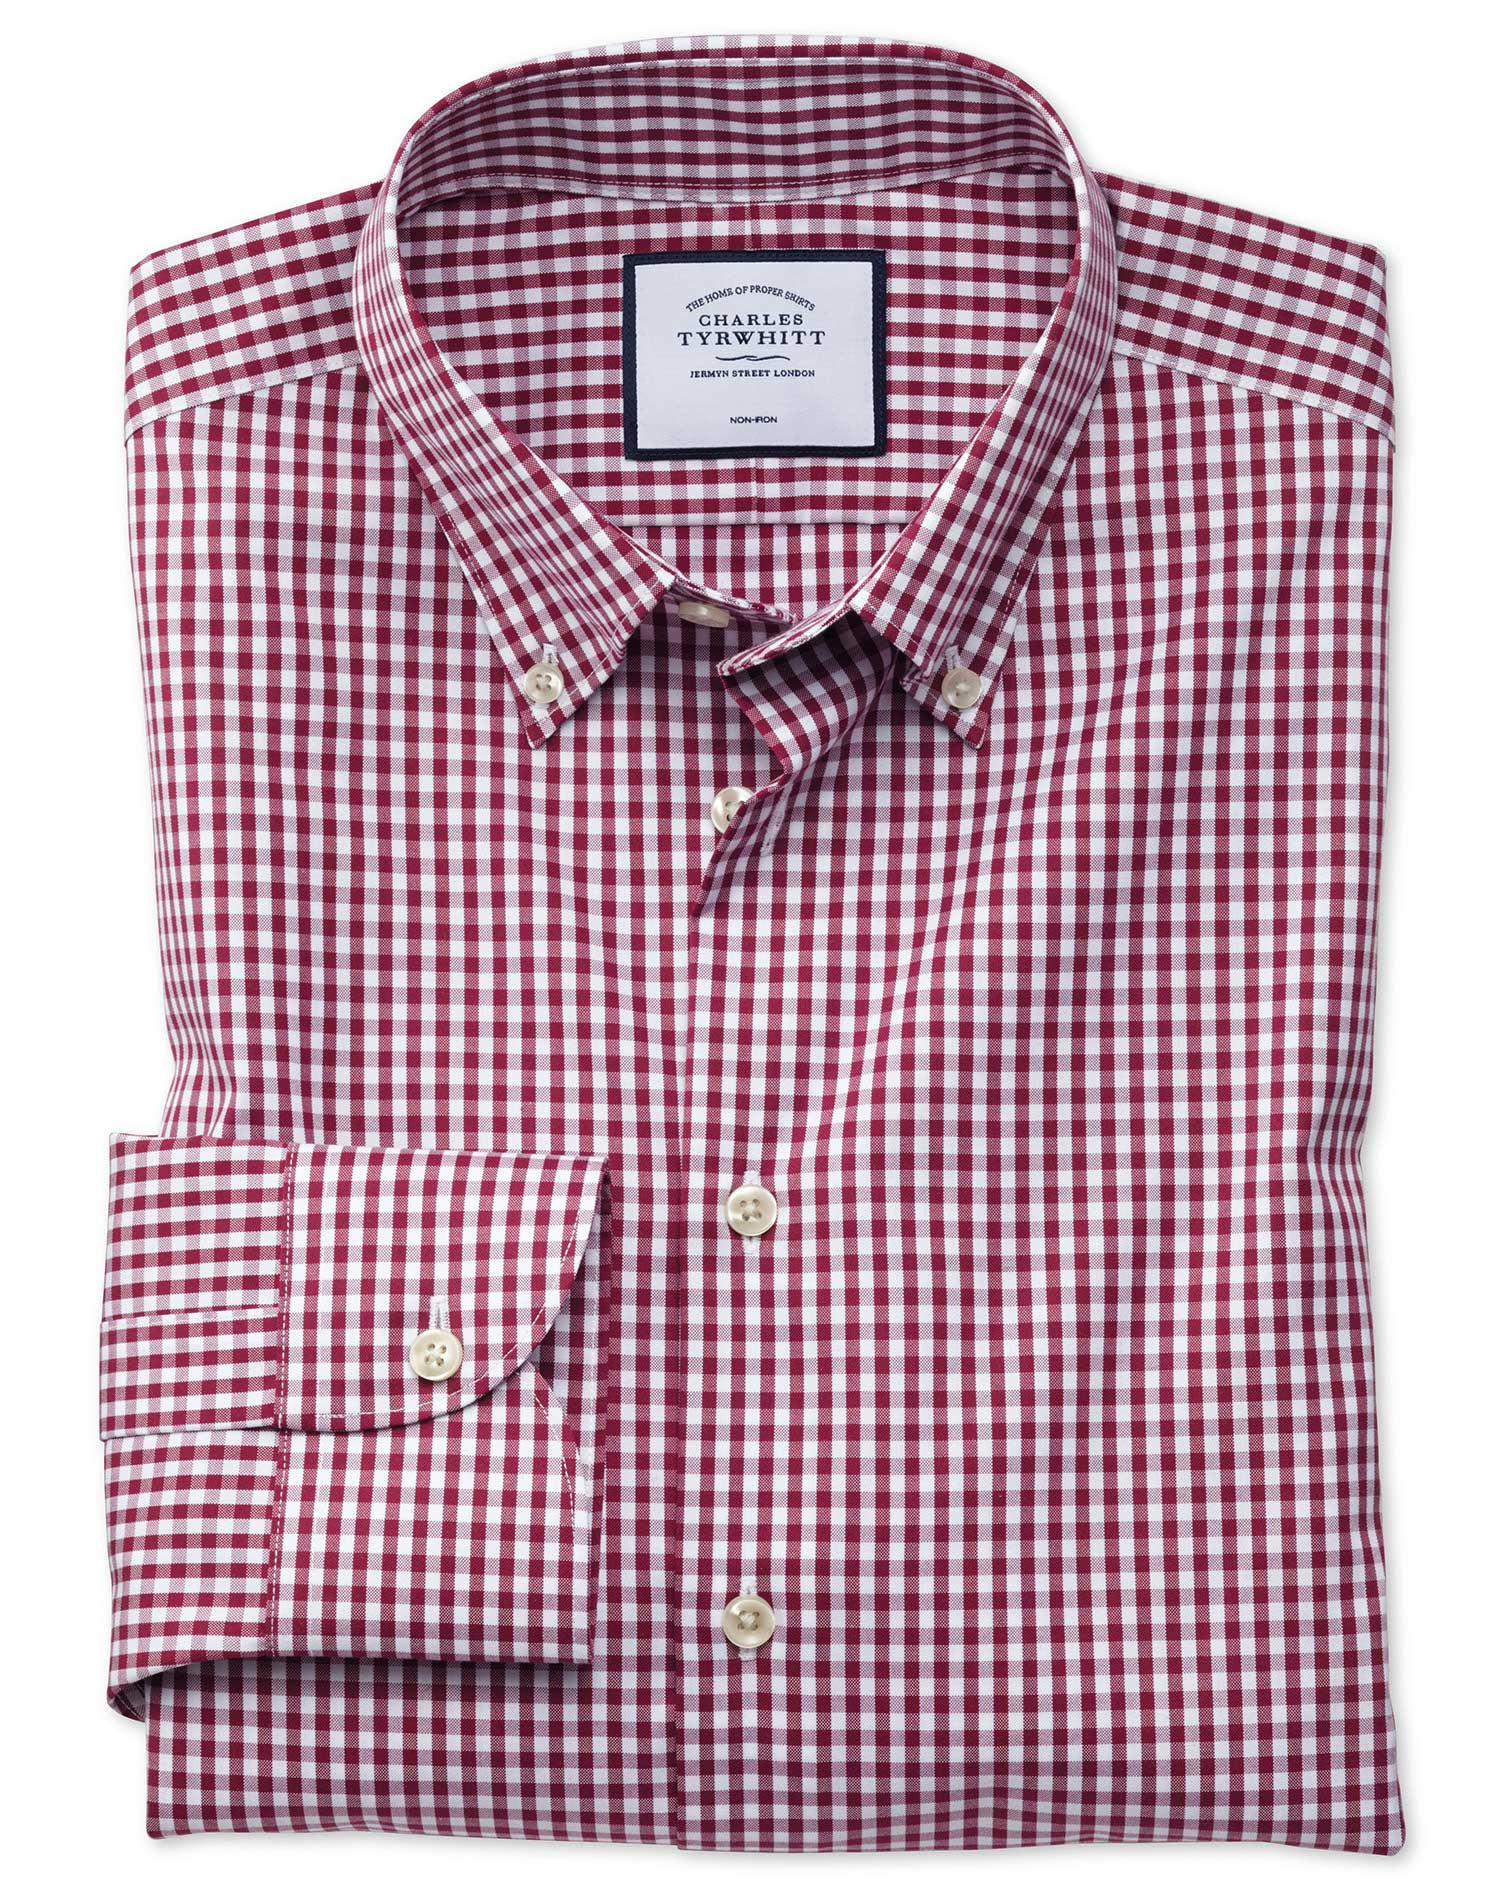 Slim Fit Business Casual Non-Iron Button-Down Berry Check Cotton Formal Shirt Single Cuff Size 15/34